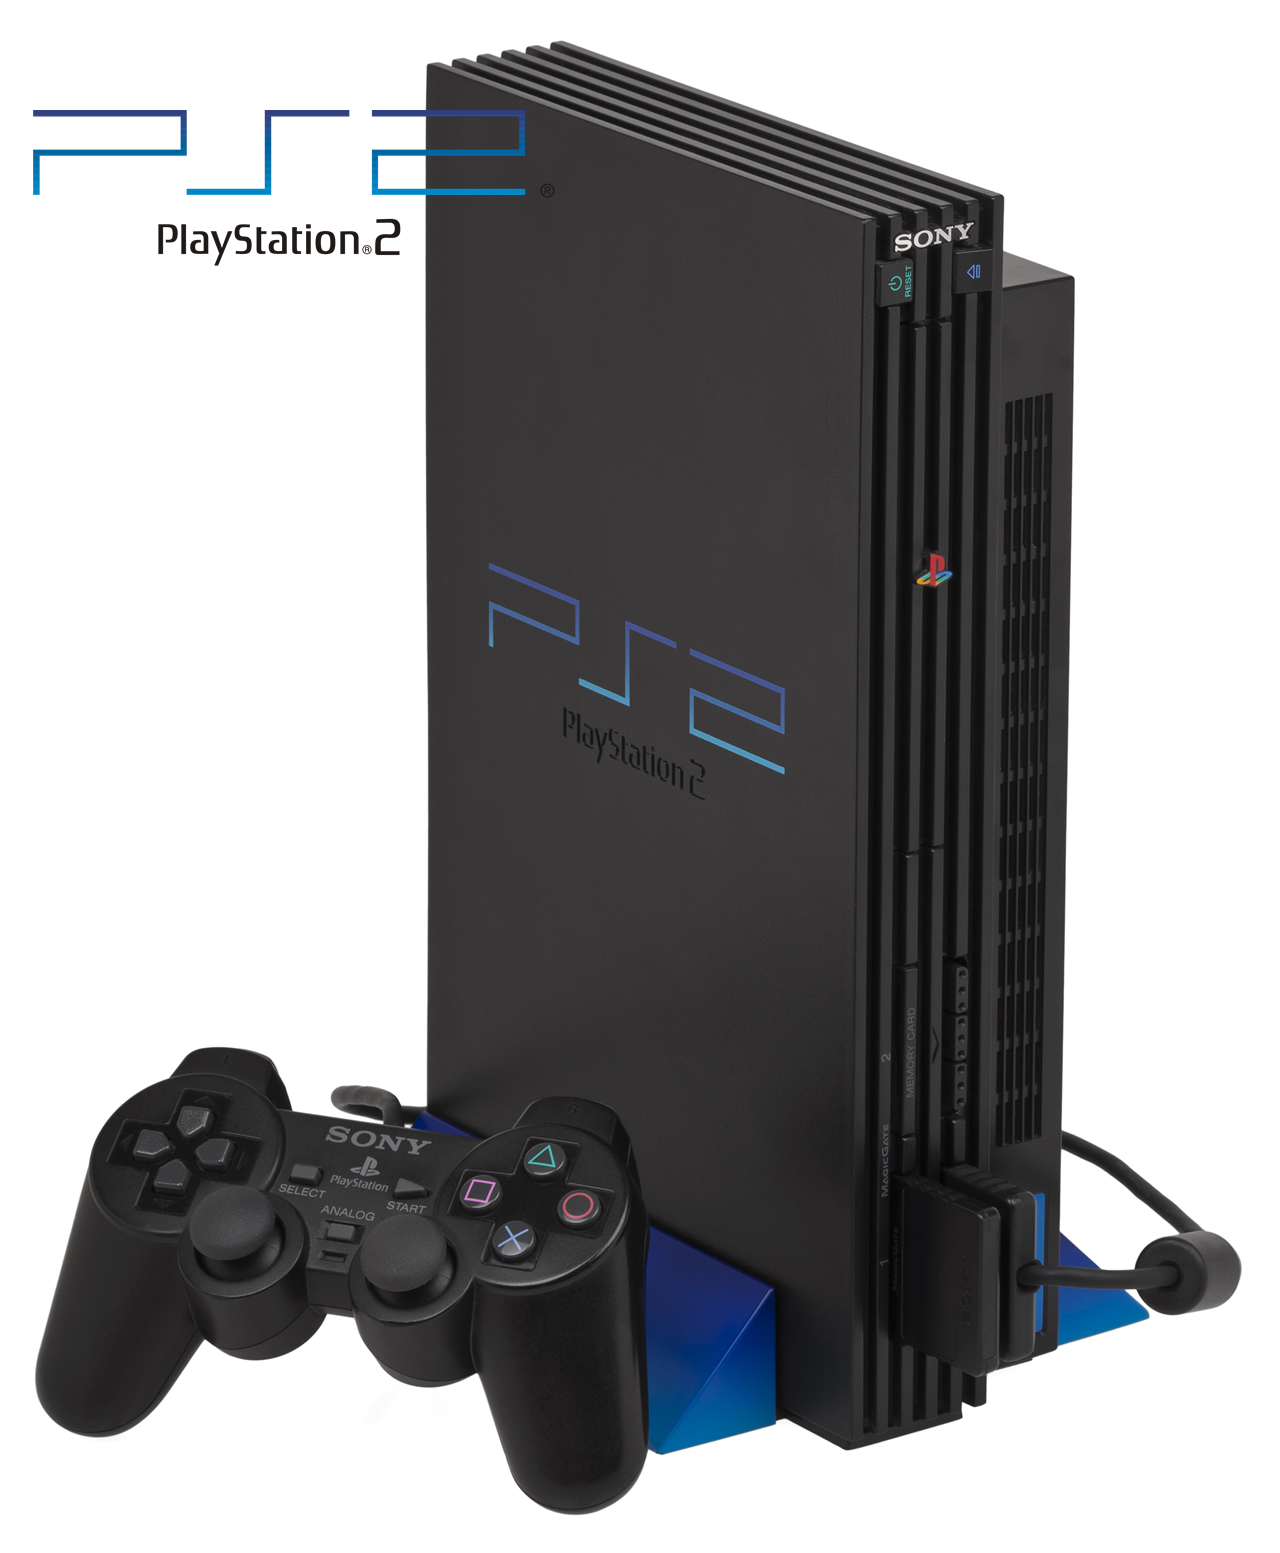 PS2 Gaming Console System